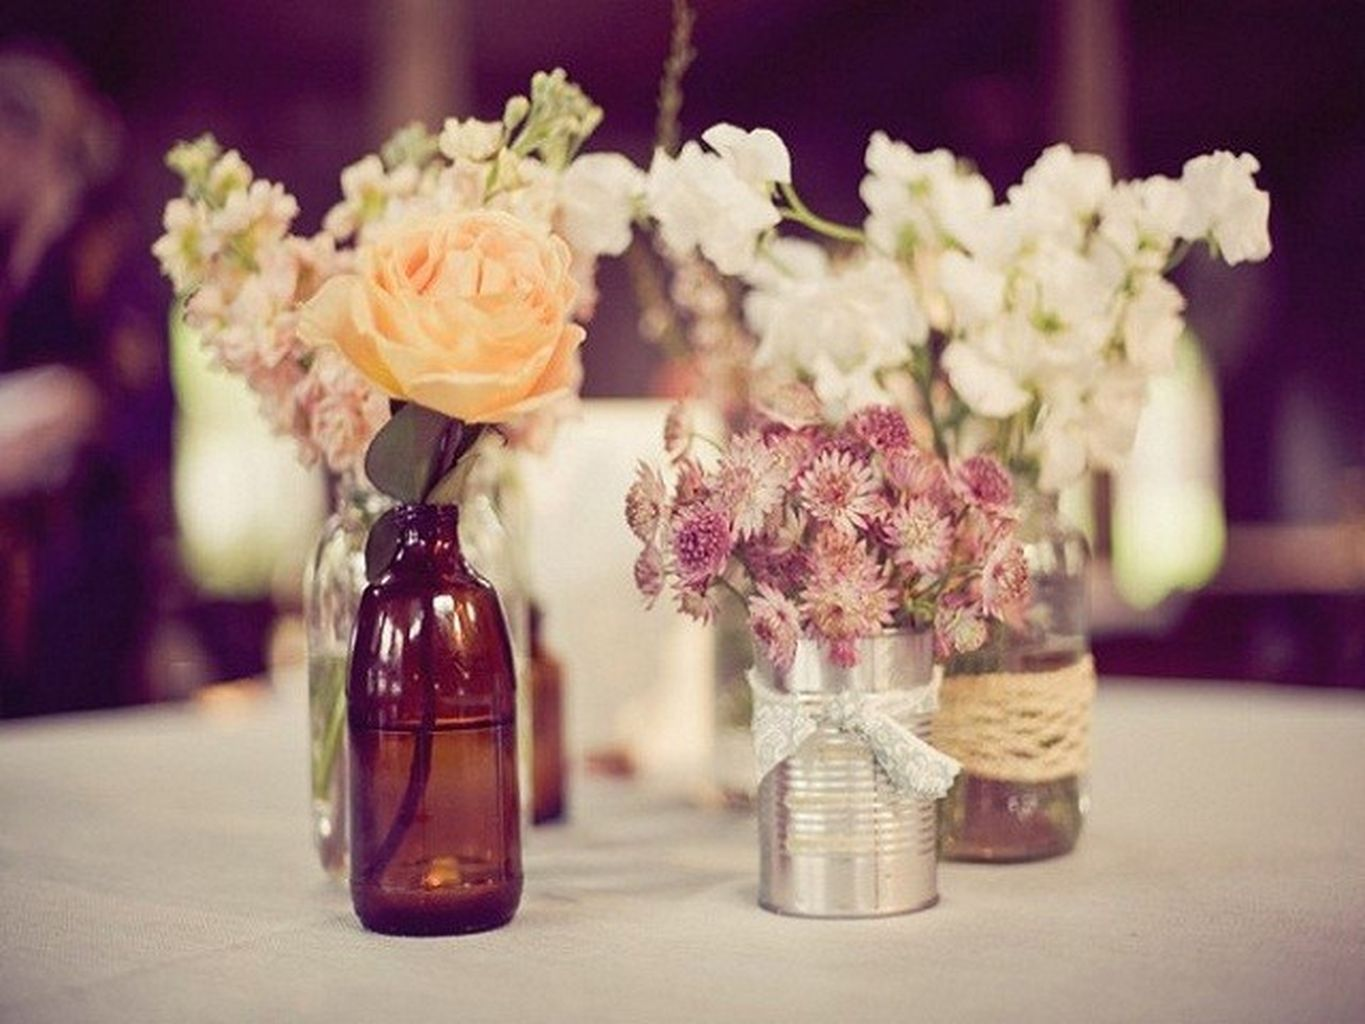 Diy rustic wedding decor ideas   Cheap and Inspiring Rustic Wedding Decorations Ideas on a Budget